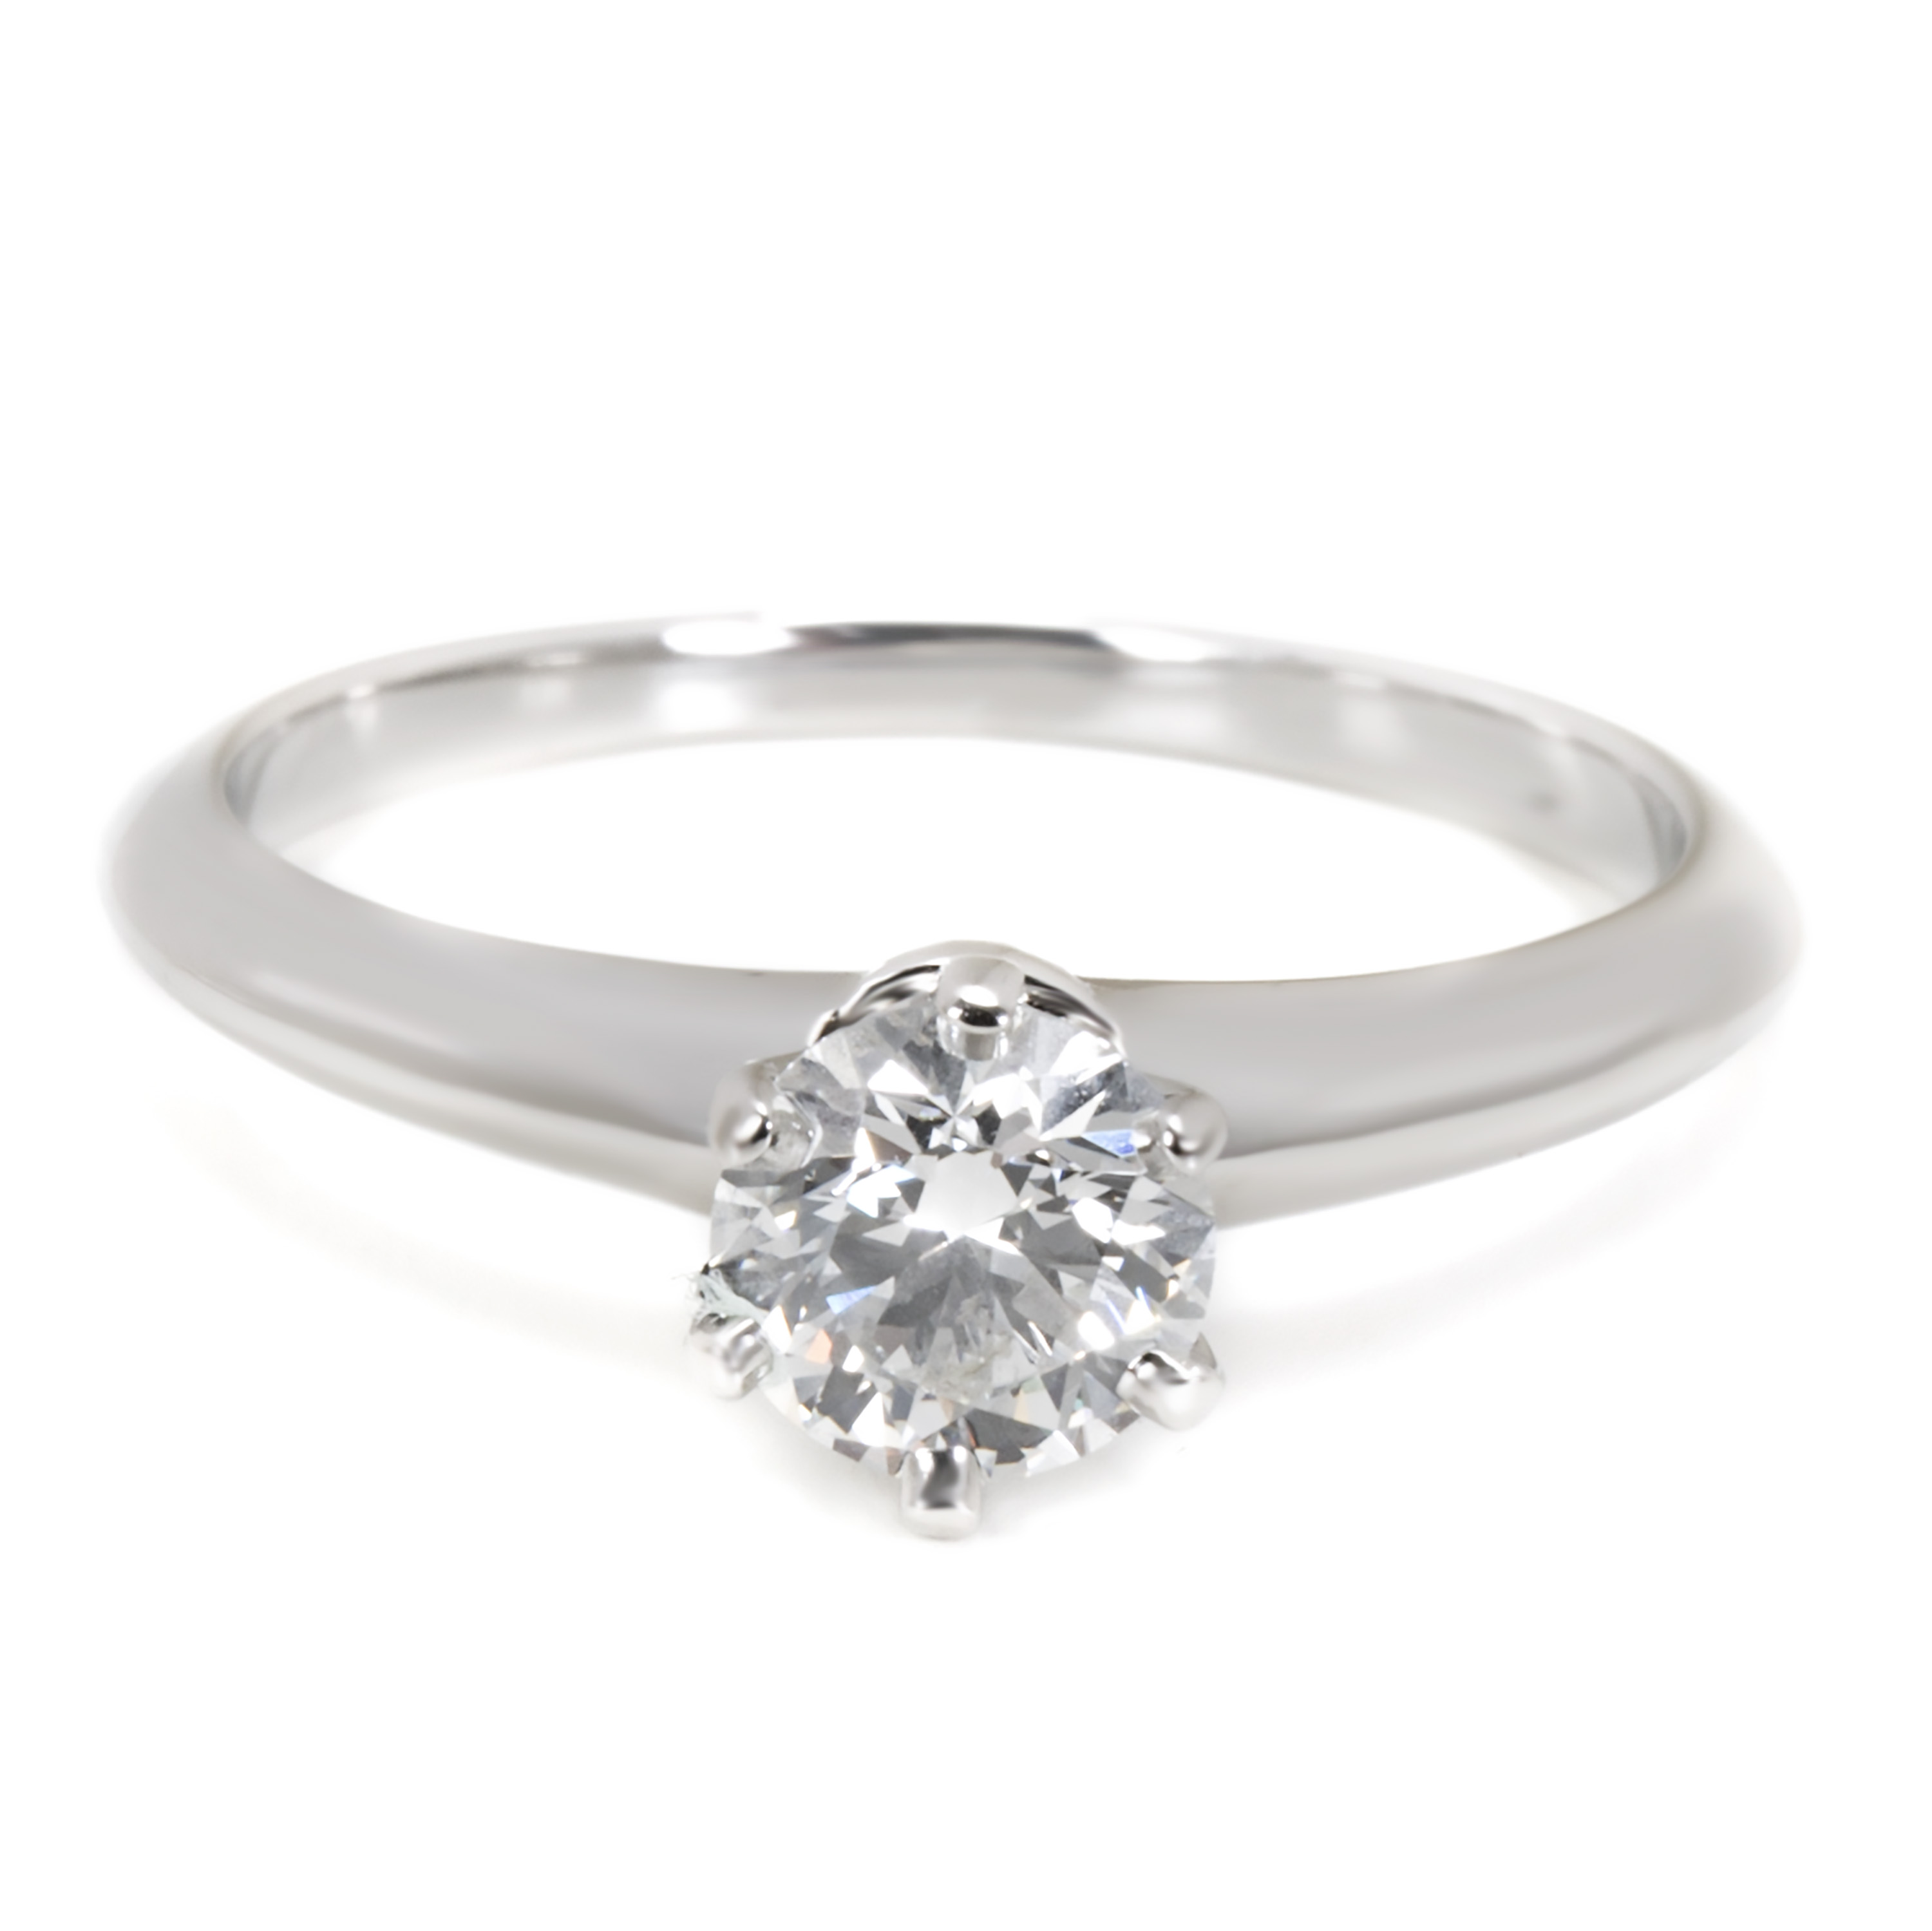 580a8c217f904 Details about Tiffany & Co. Diamond Engagement Ring in Platinum F VS1 0.62  CTW